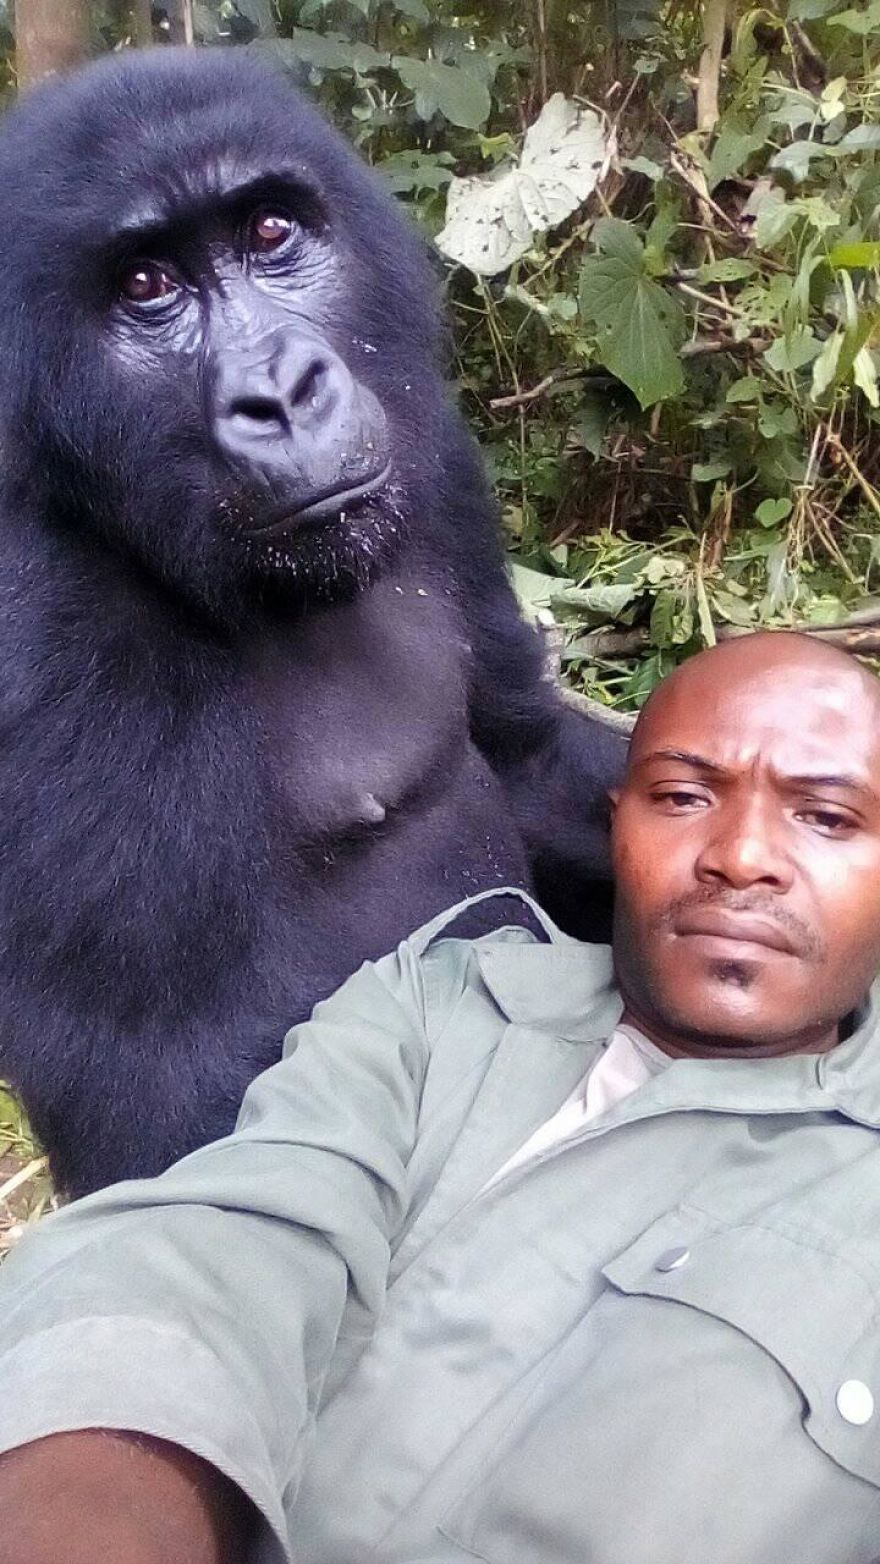 selfie with gorilla